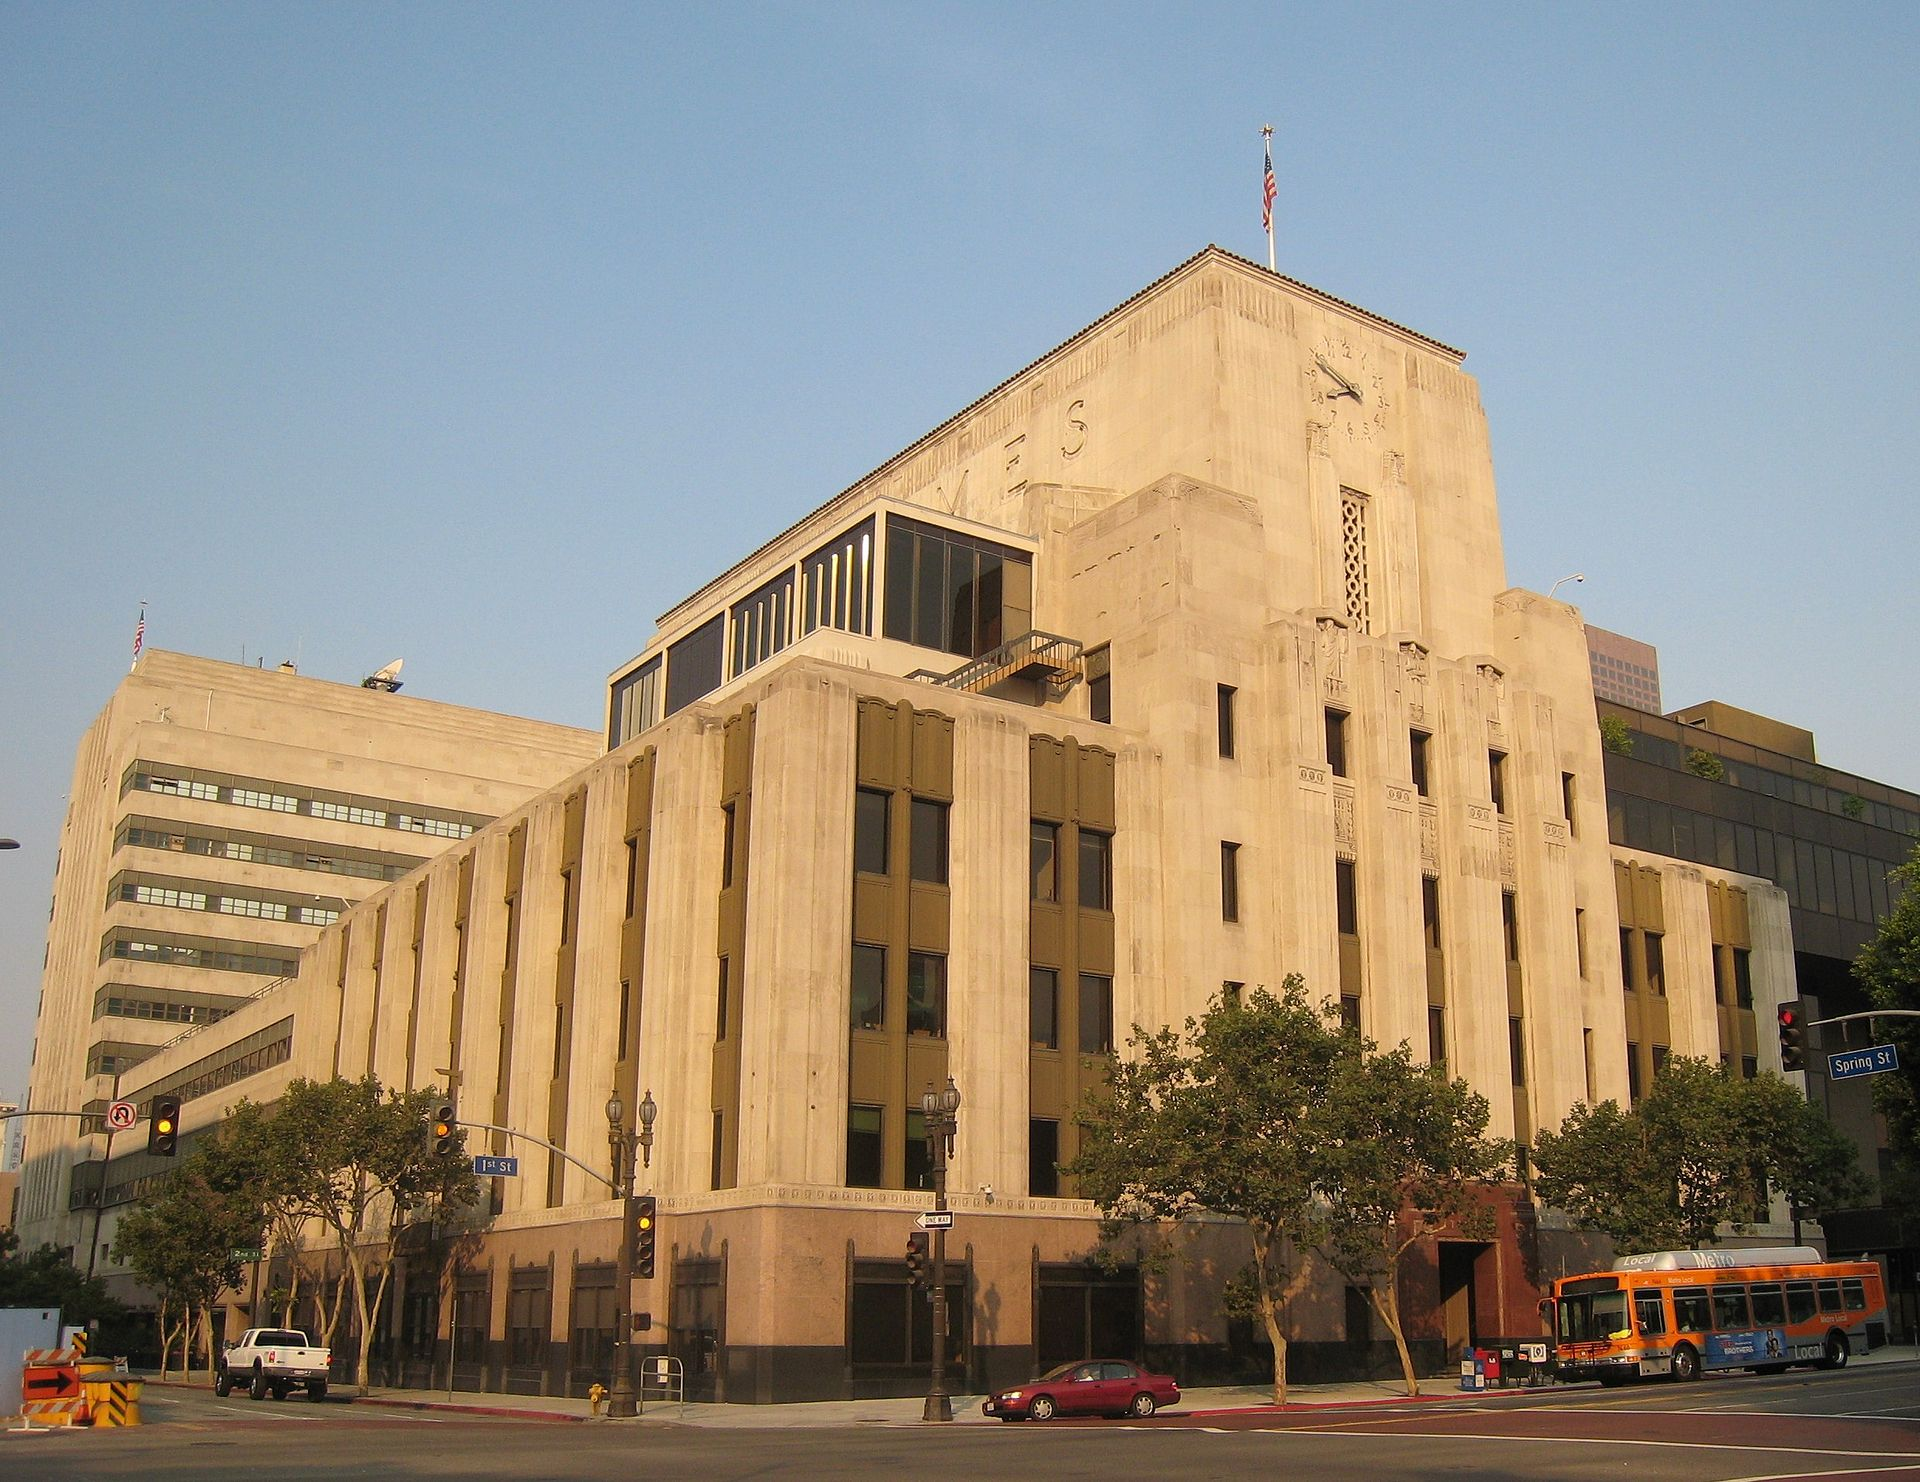 Apply now for an L.A. Times internship – for Reynolds School students only